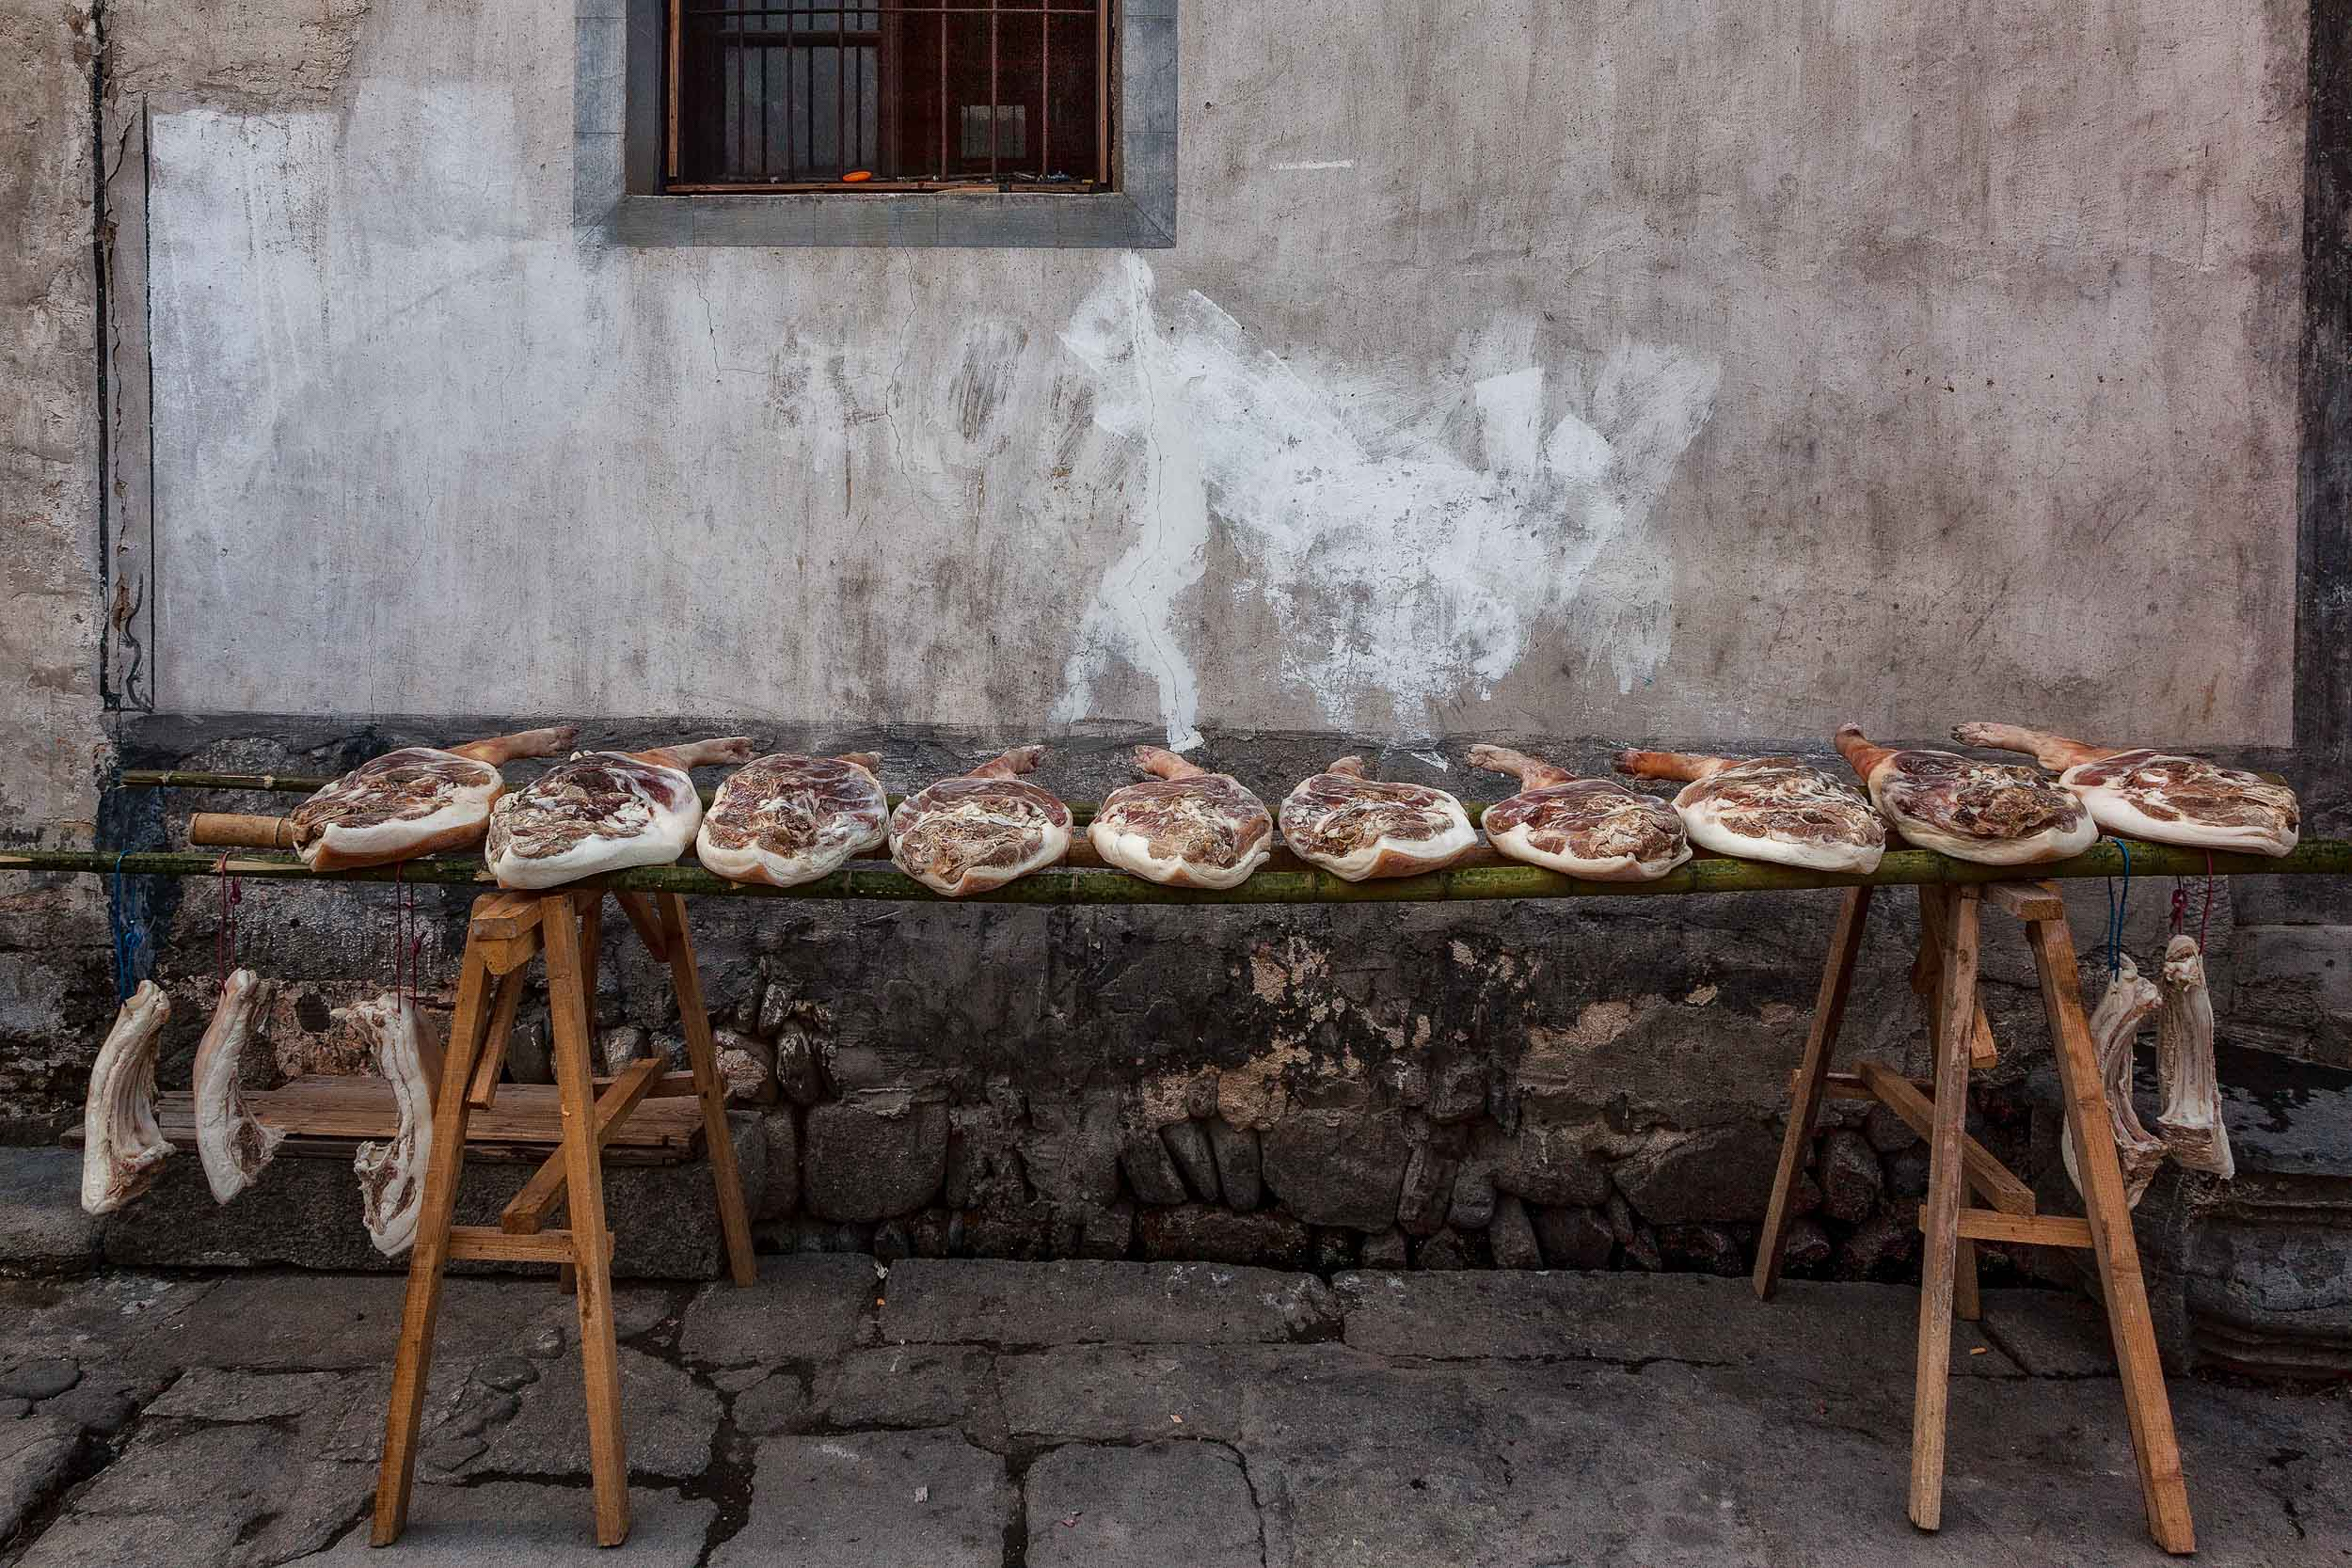 A detailed image of goods for sale in a    local butcher shop    in the traditional village of    Hongcun, China   . One of many curious sights you can find photographing China.